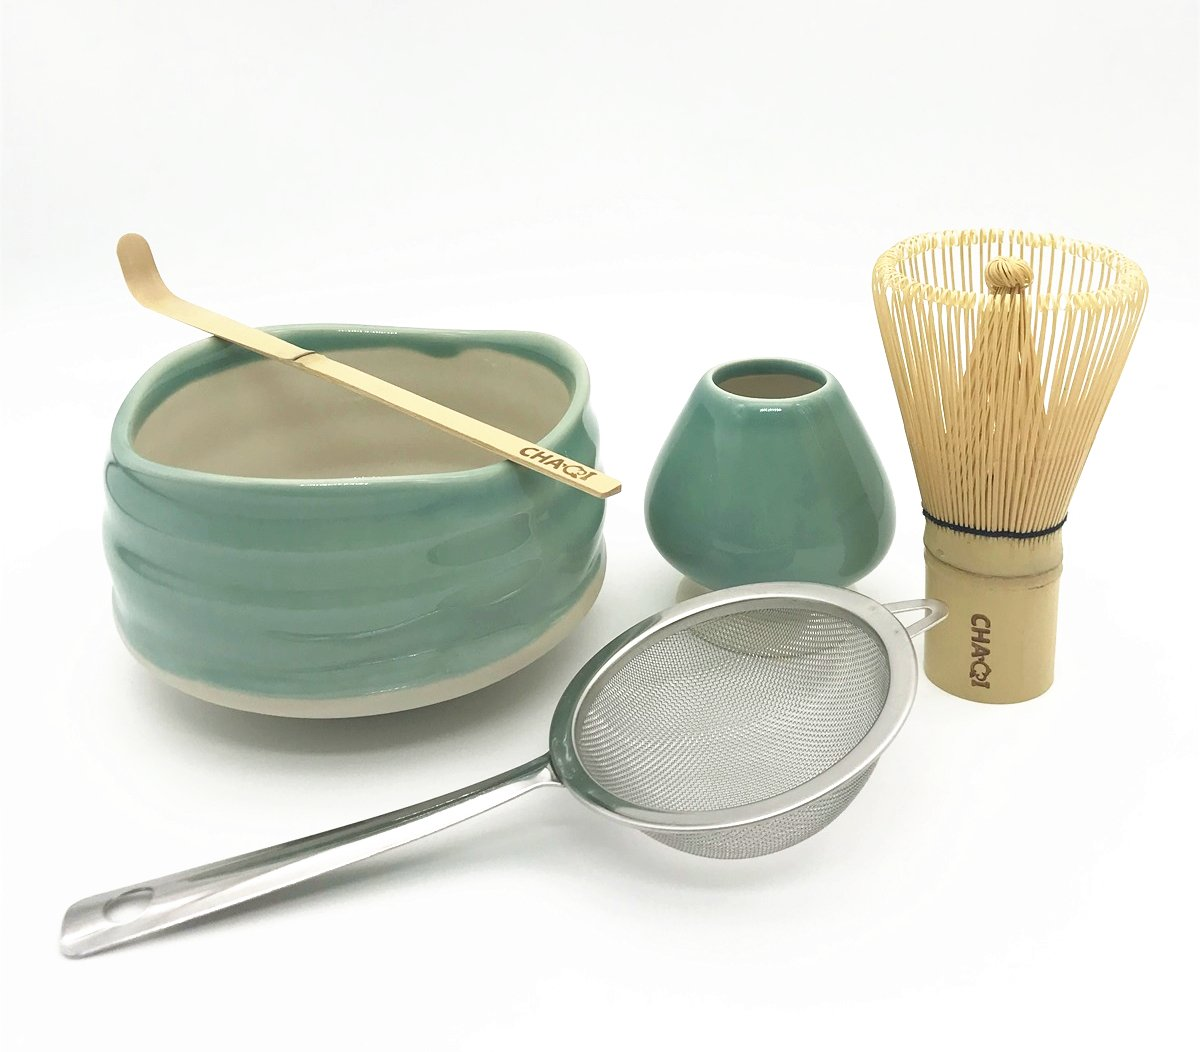 Home Soul Matcha Accessories Kit Include 5 items-100 Prongs Bamboo Whisk Chasen,Bamboo Scoop,Stainless Steel Tea Filter and Ceramic Matcha Bowl & Whisk Holder (Green)